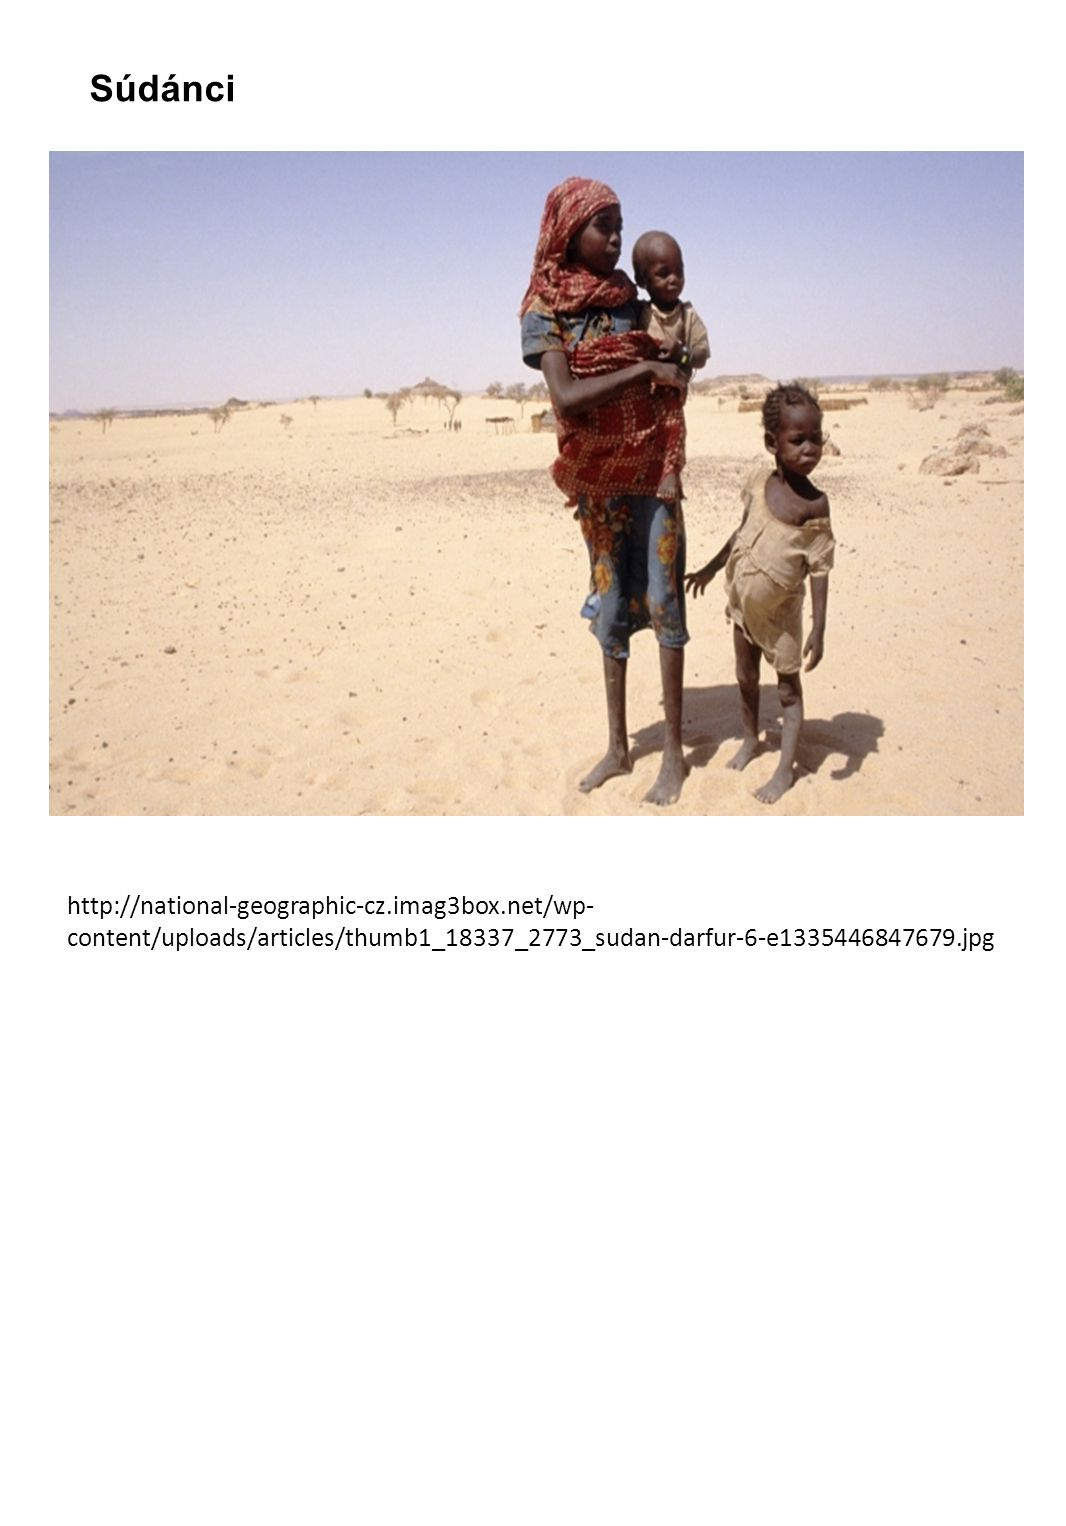 http://national-geographic-cz.imag3box.net/wp- content/uploads/articles/thumb1_18337_2773_sudan-darfur-6-e1335446847679.jpg Súdánci